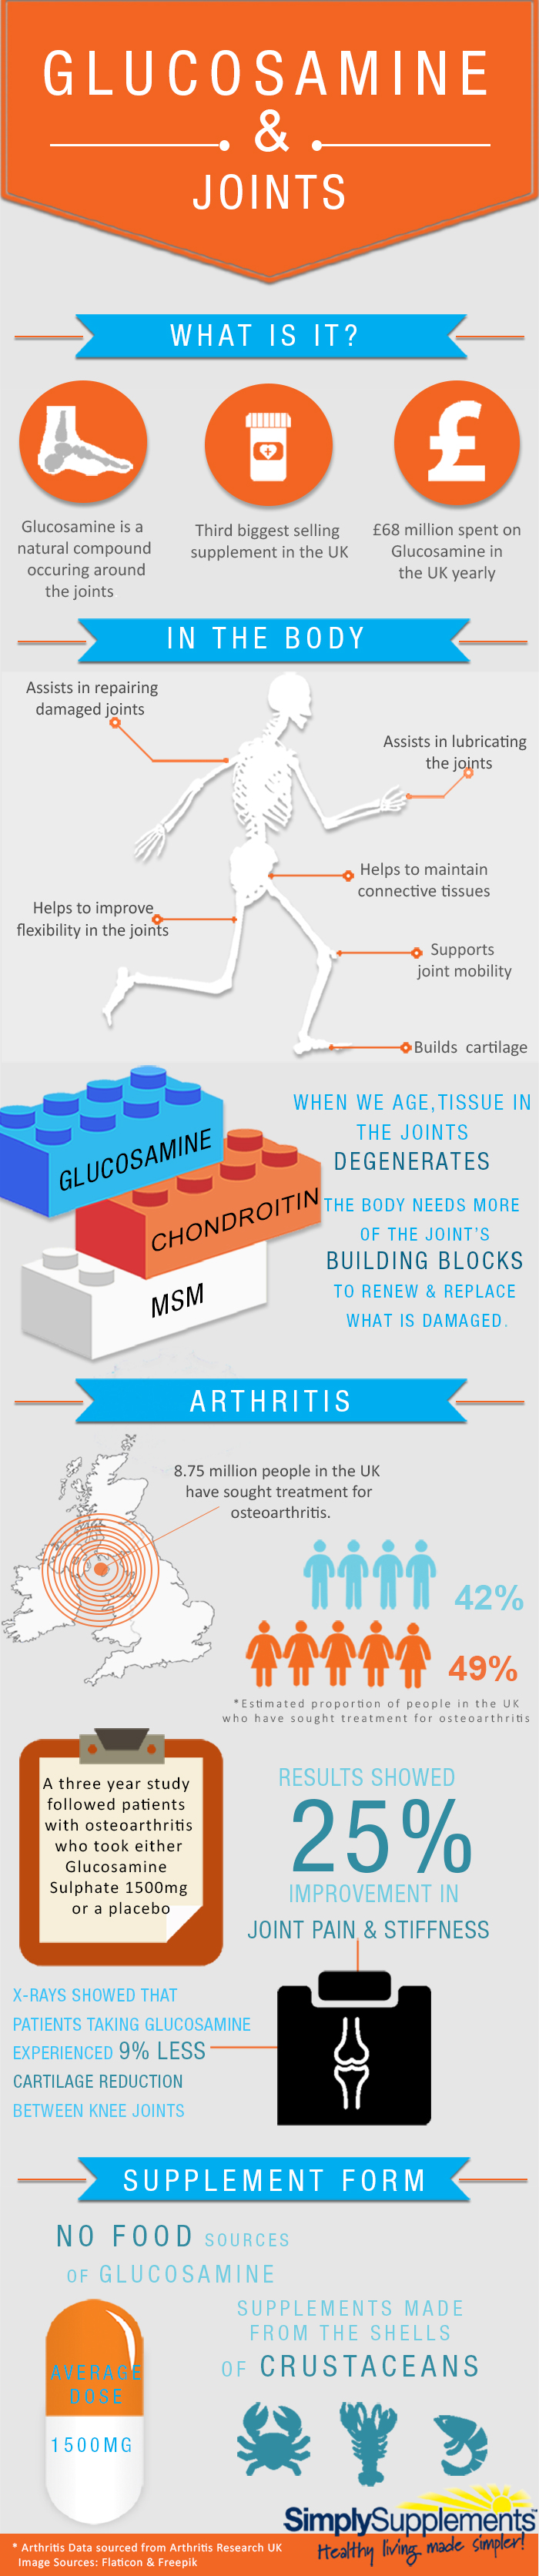 Glucosamine & Joints